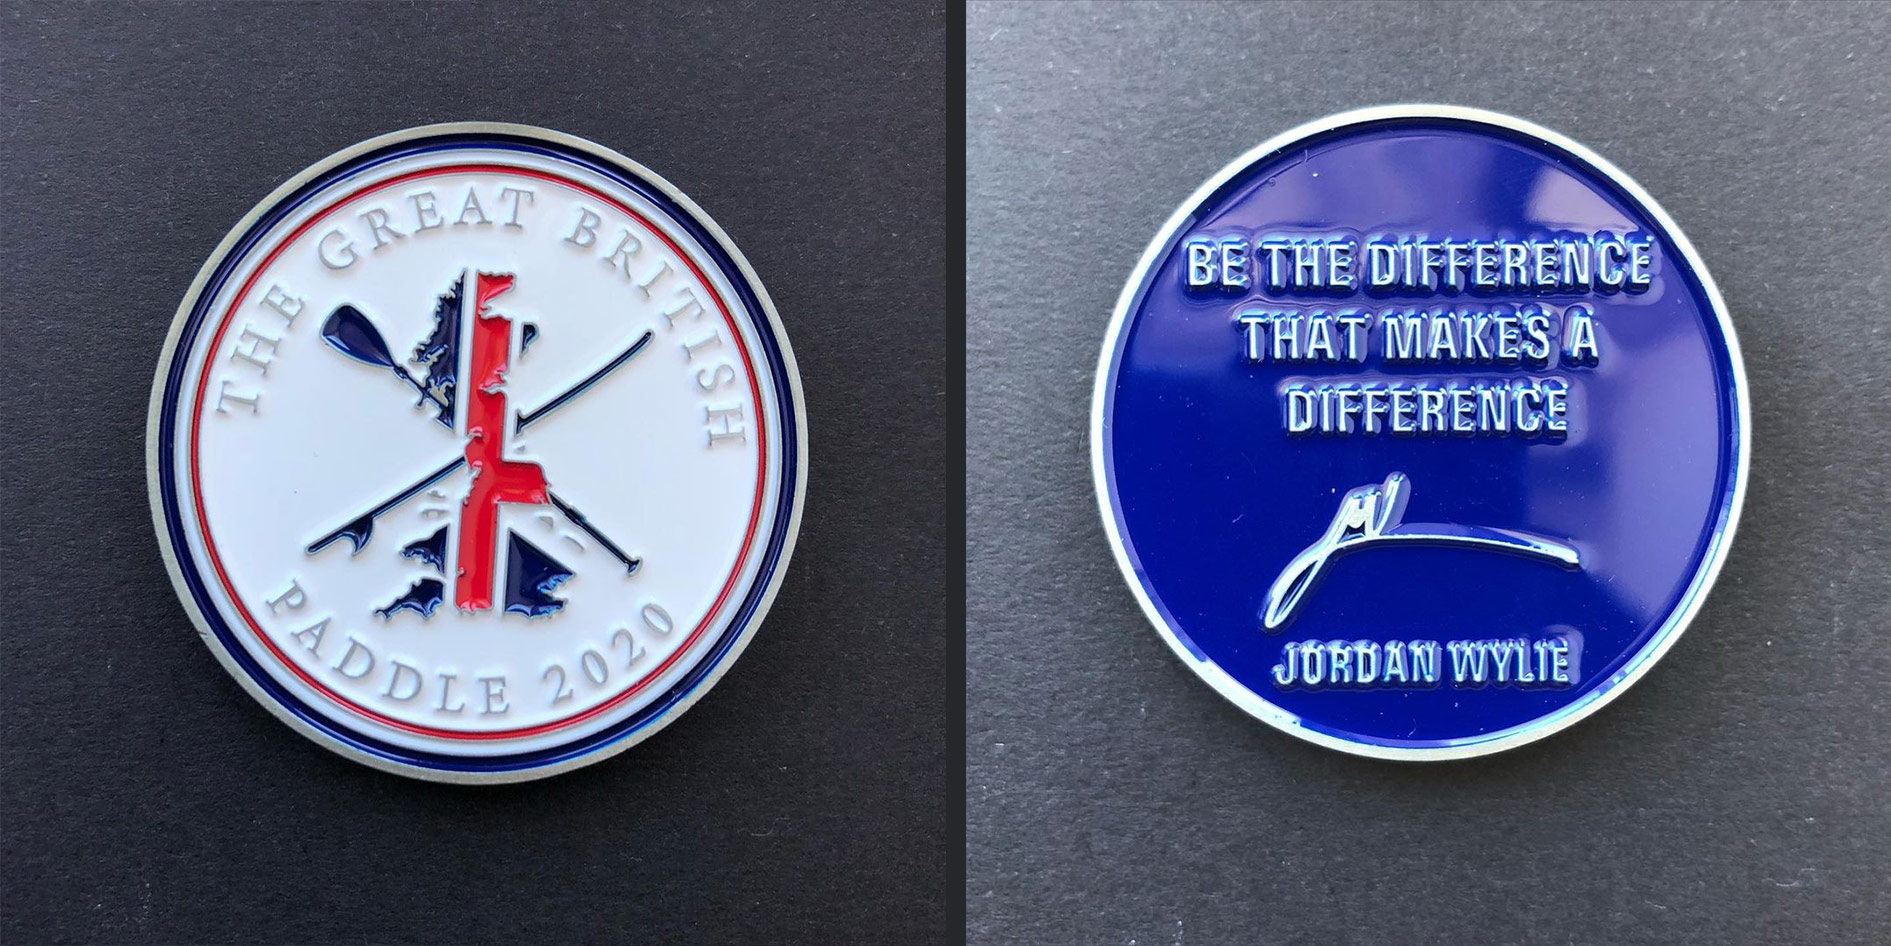 events to mark with a Commemorative Coin